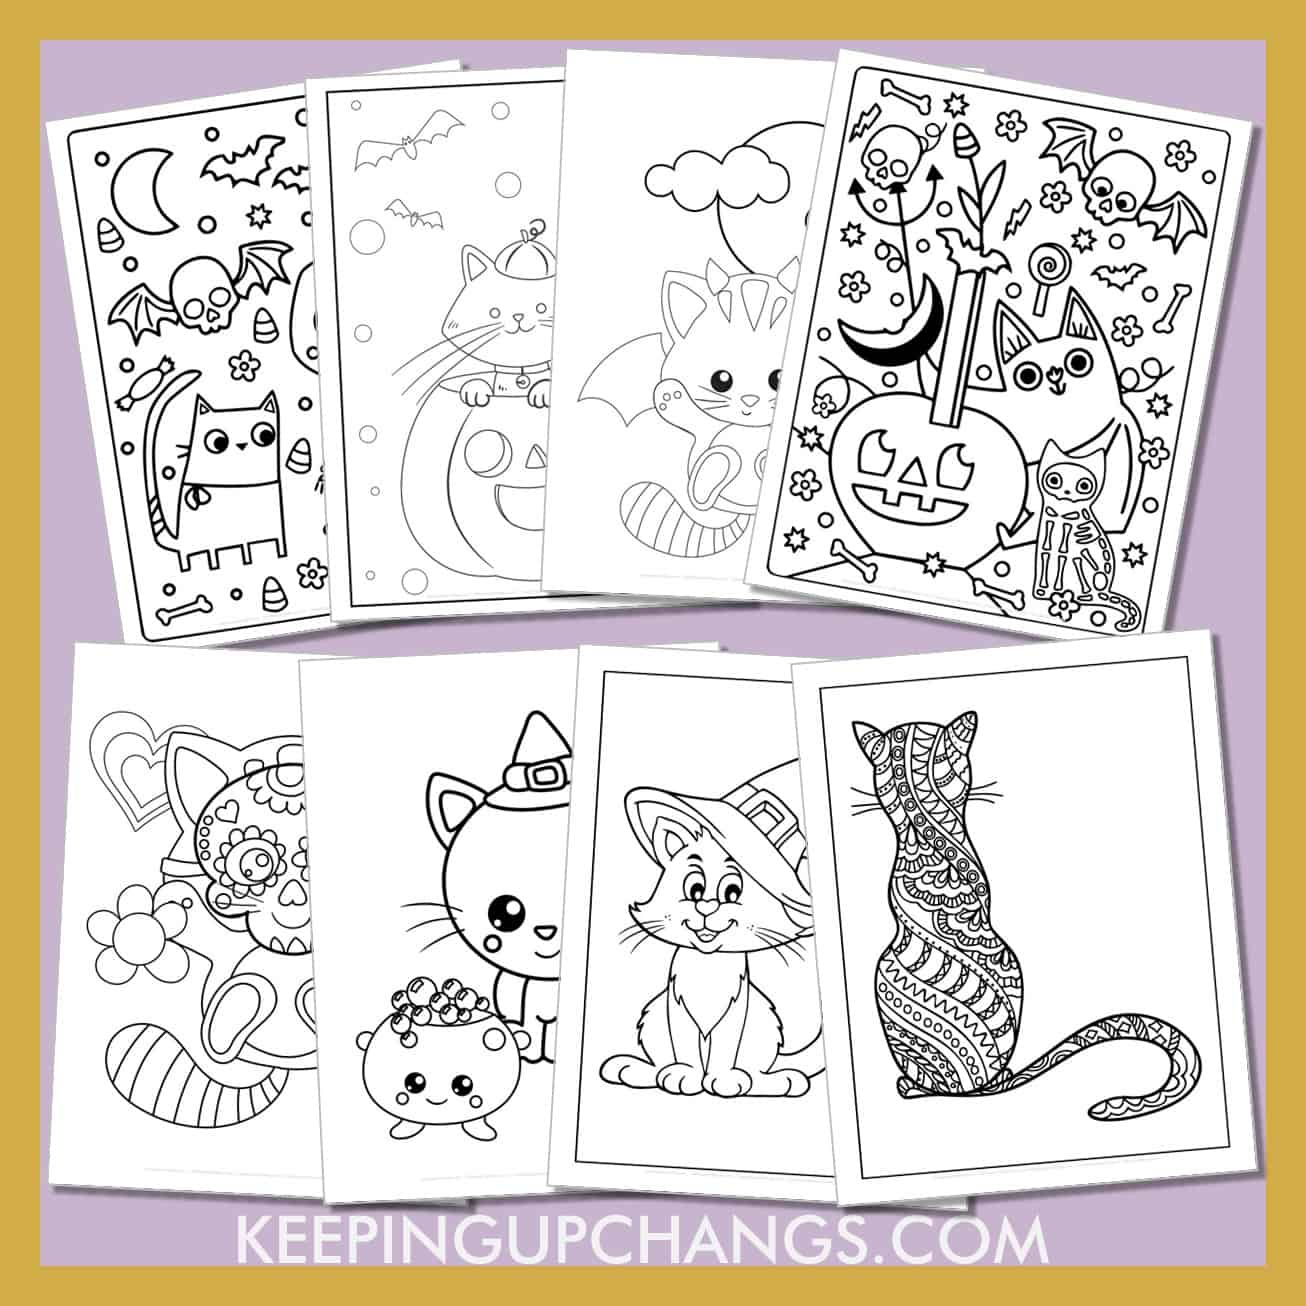 halloween cat colouring sheets including easy, cute, adorable and scary worksheets for kids and adults.